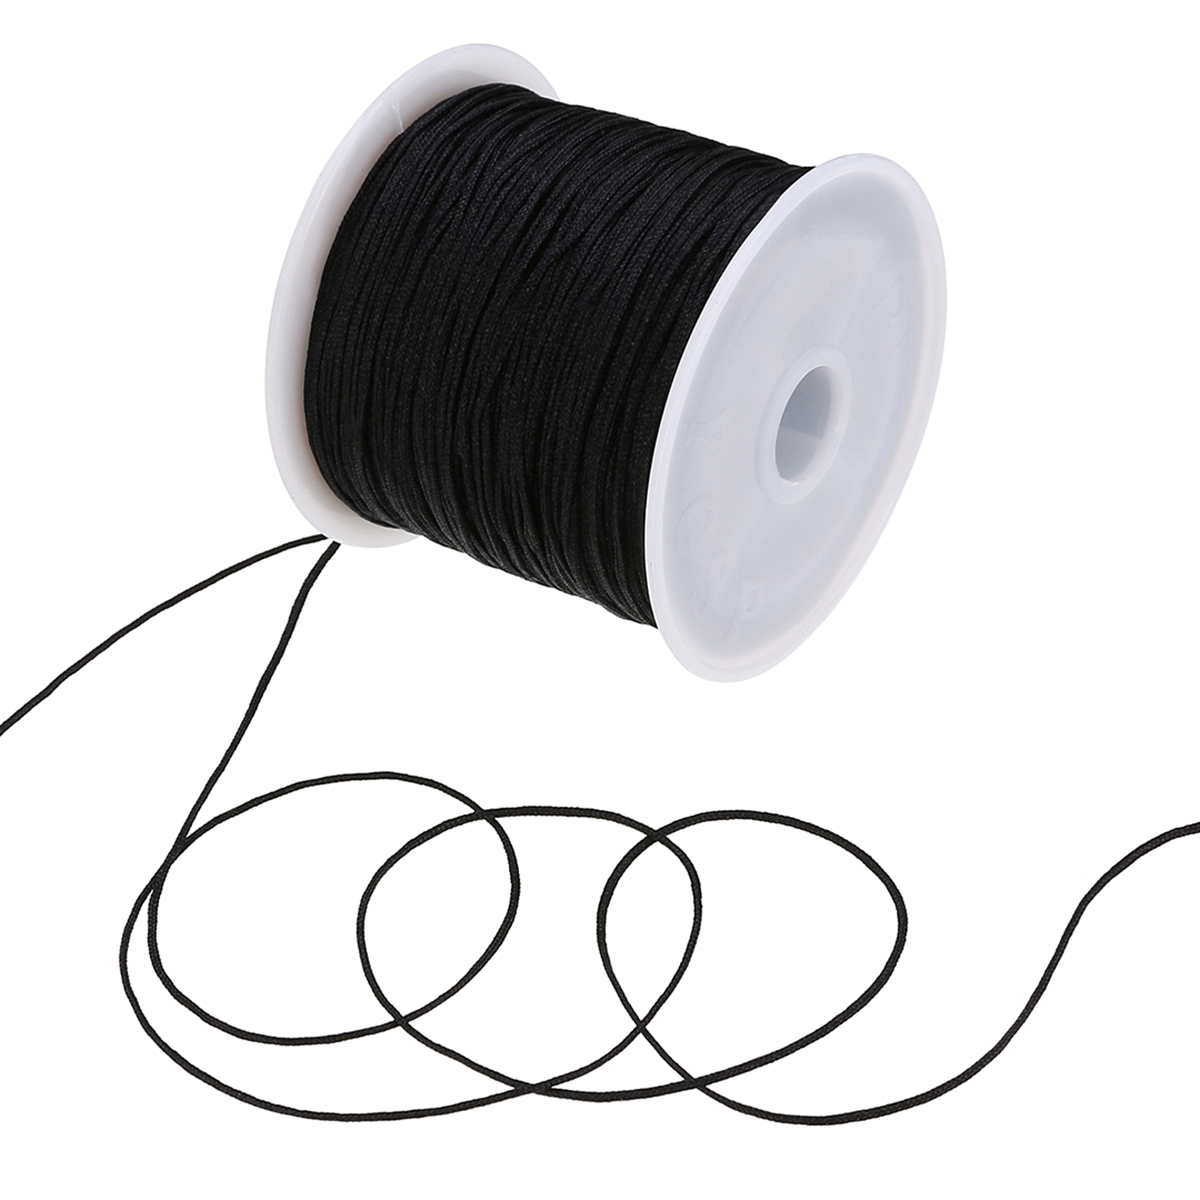 New 0.8mm 45M/Roll Nylon Cord Thread Chinese Knot Macrame Rattail Bracelet Braided String for DIY Craft Sewing Accessories